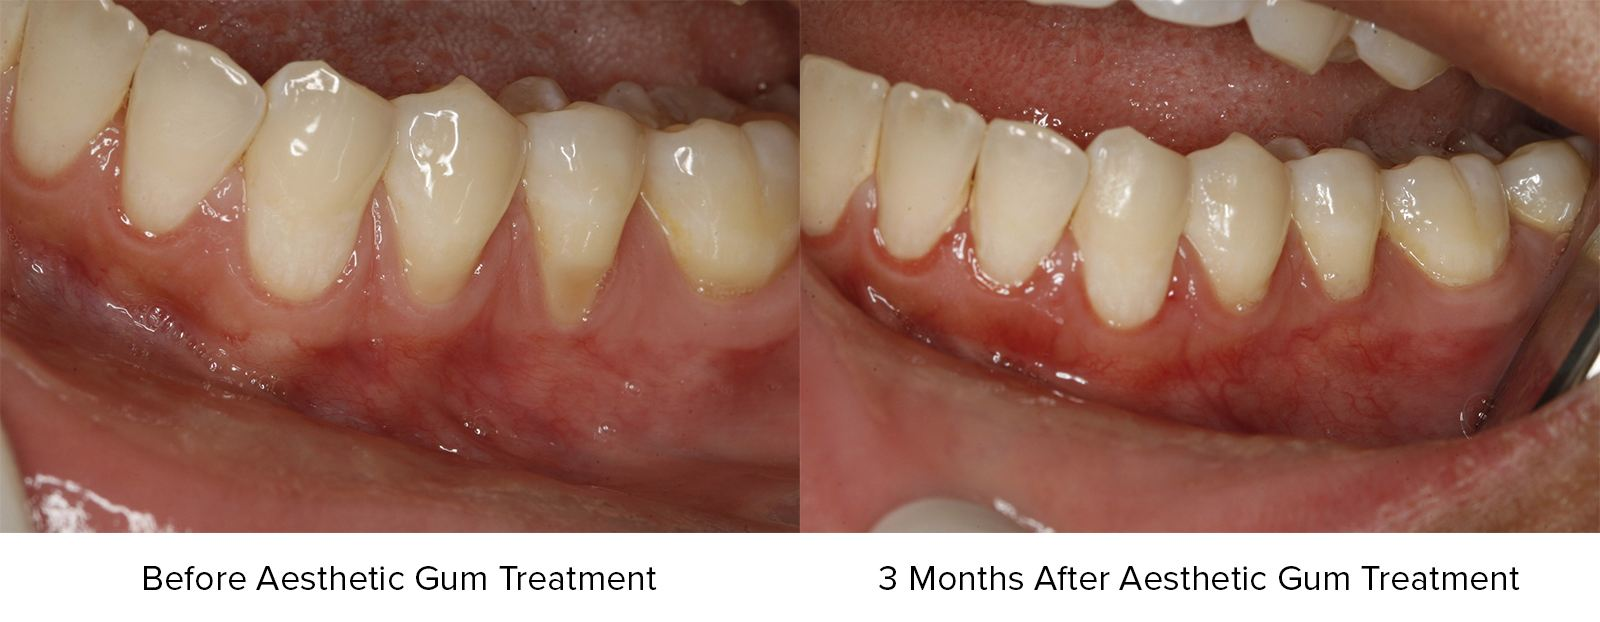 Before Aesthetic Gum Treatment and 3 Months After Aesthetic Gum Treatment Photos